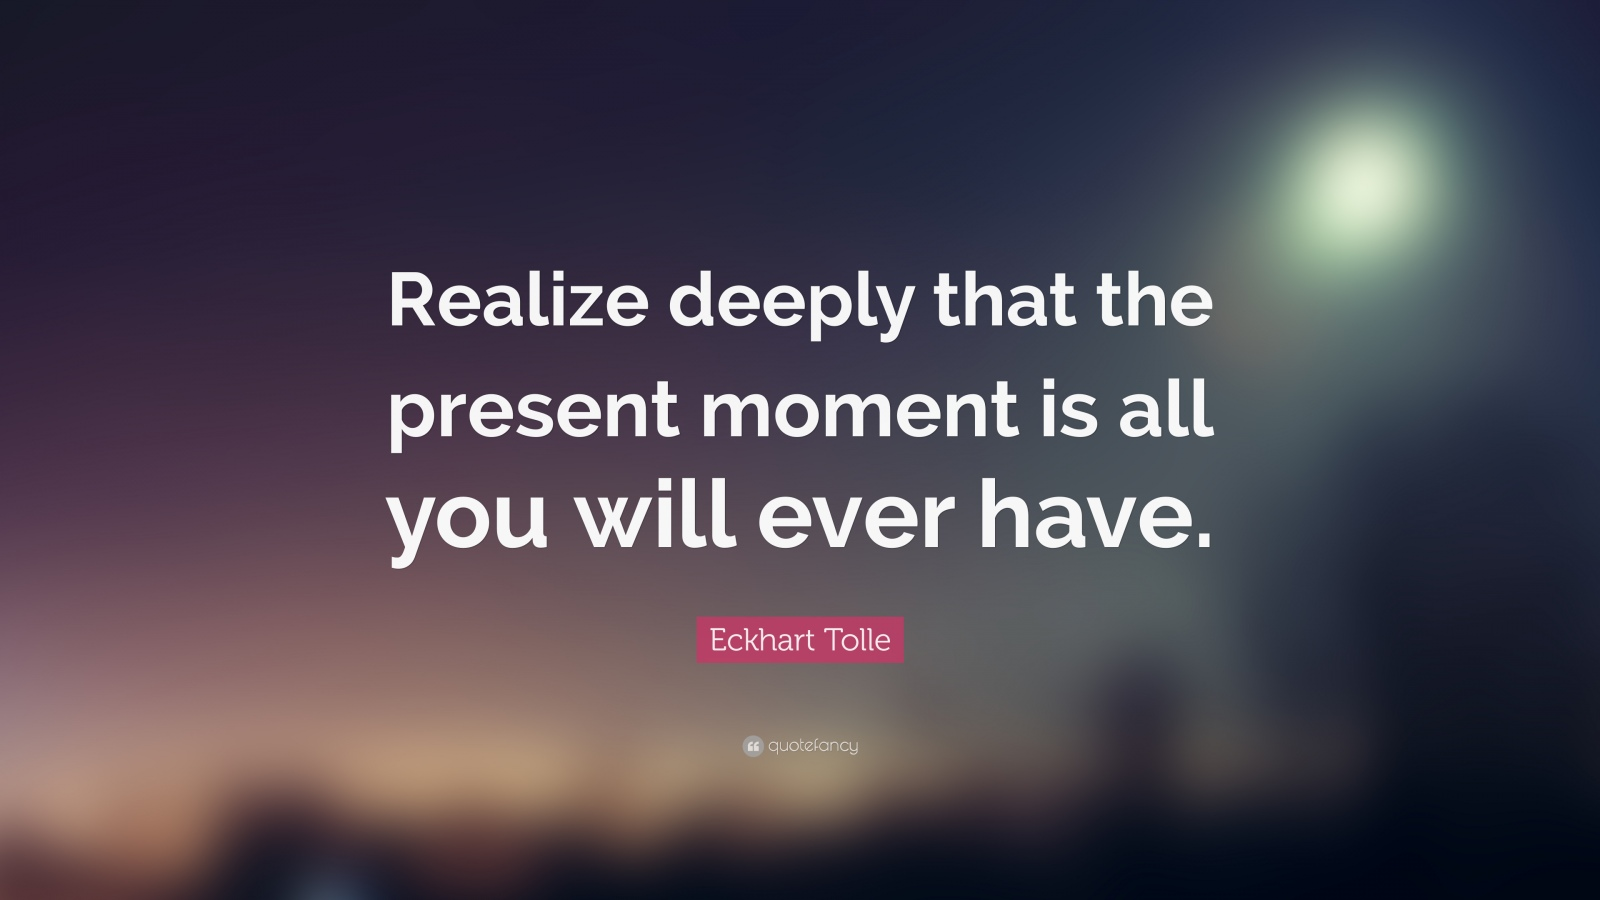 [Image] Tomorrow never comes. there is no other time but the present.